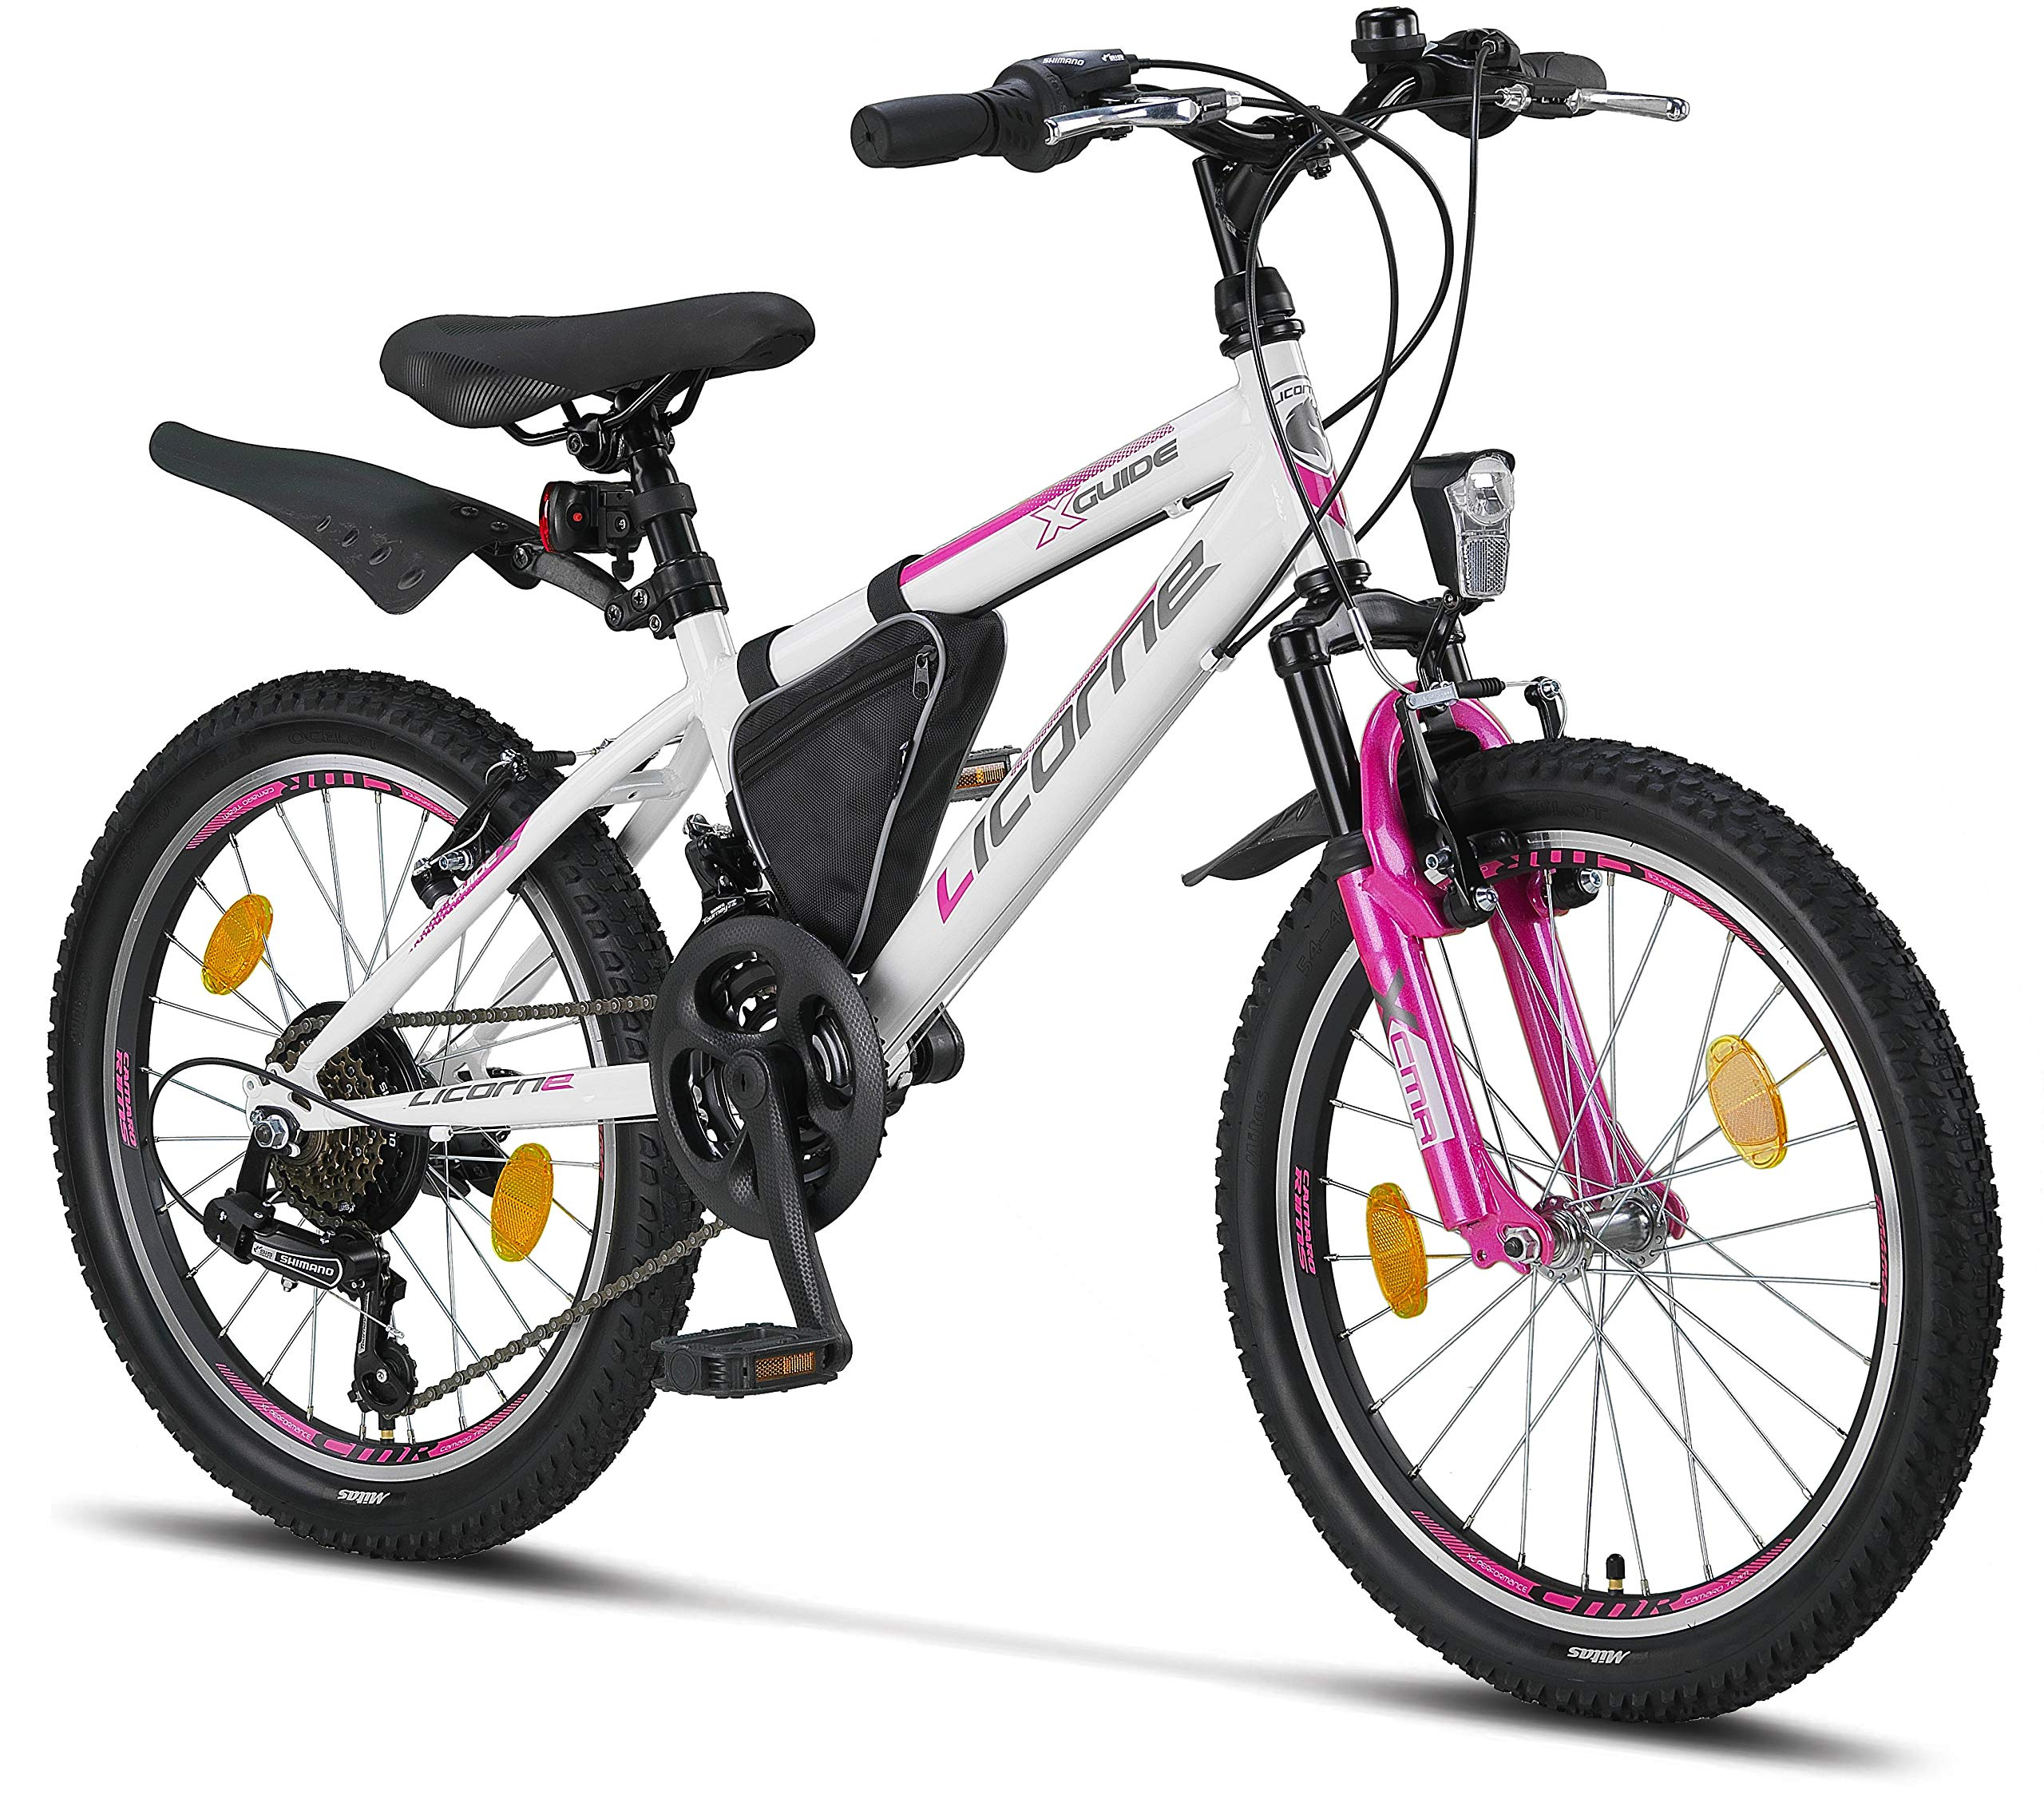 Licorne Guide Mountain Bike - 26, 24 or 20 Inch - Shimano 21-Speed Gears, Fork Suspension - Children's Bicycle for Boys and Girls - Frame Bag